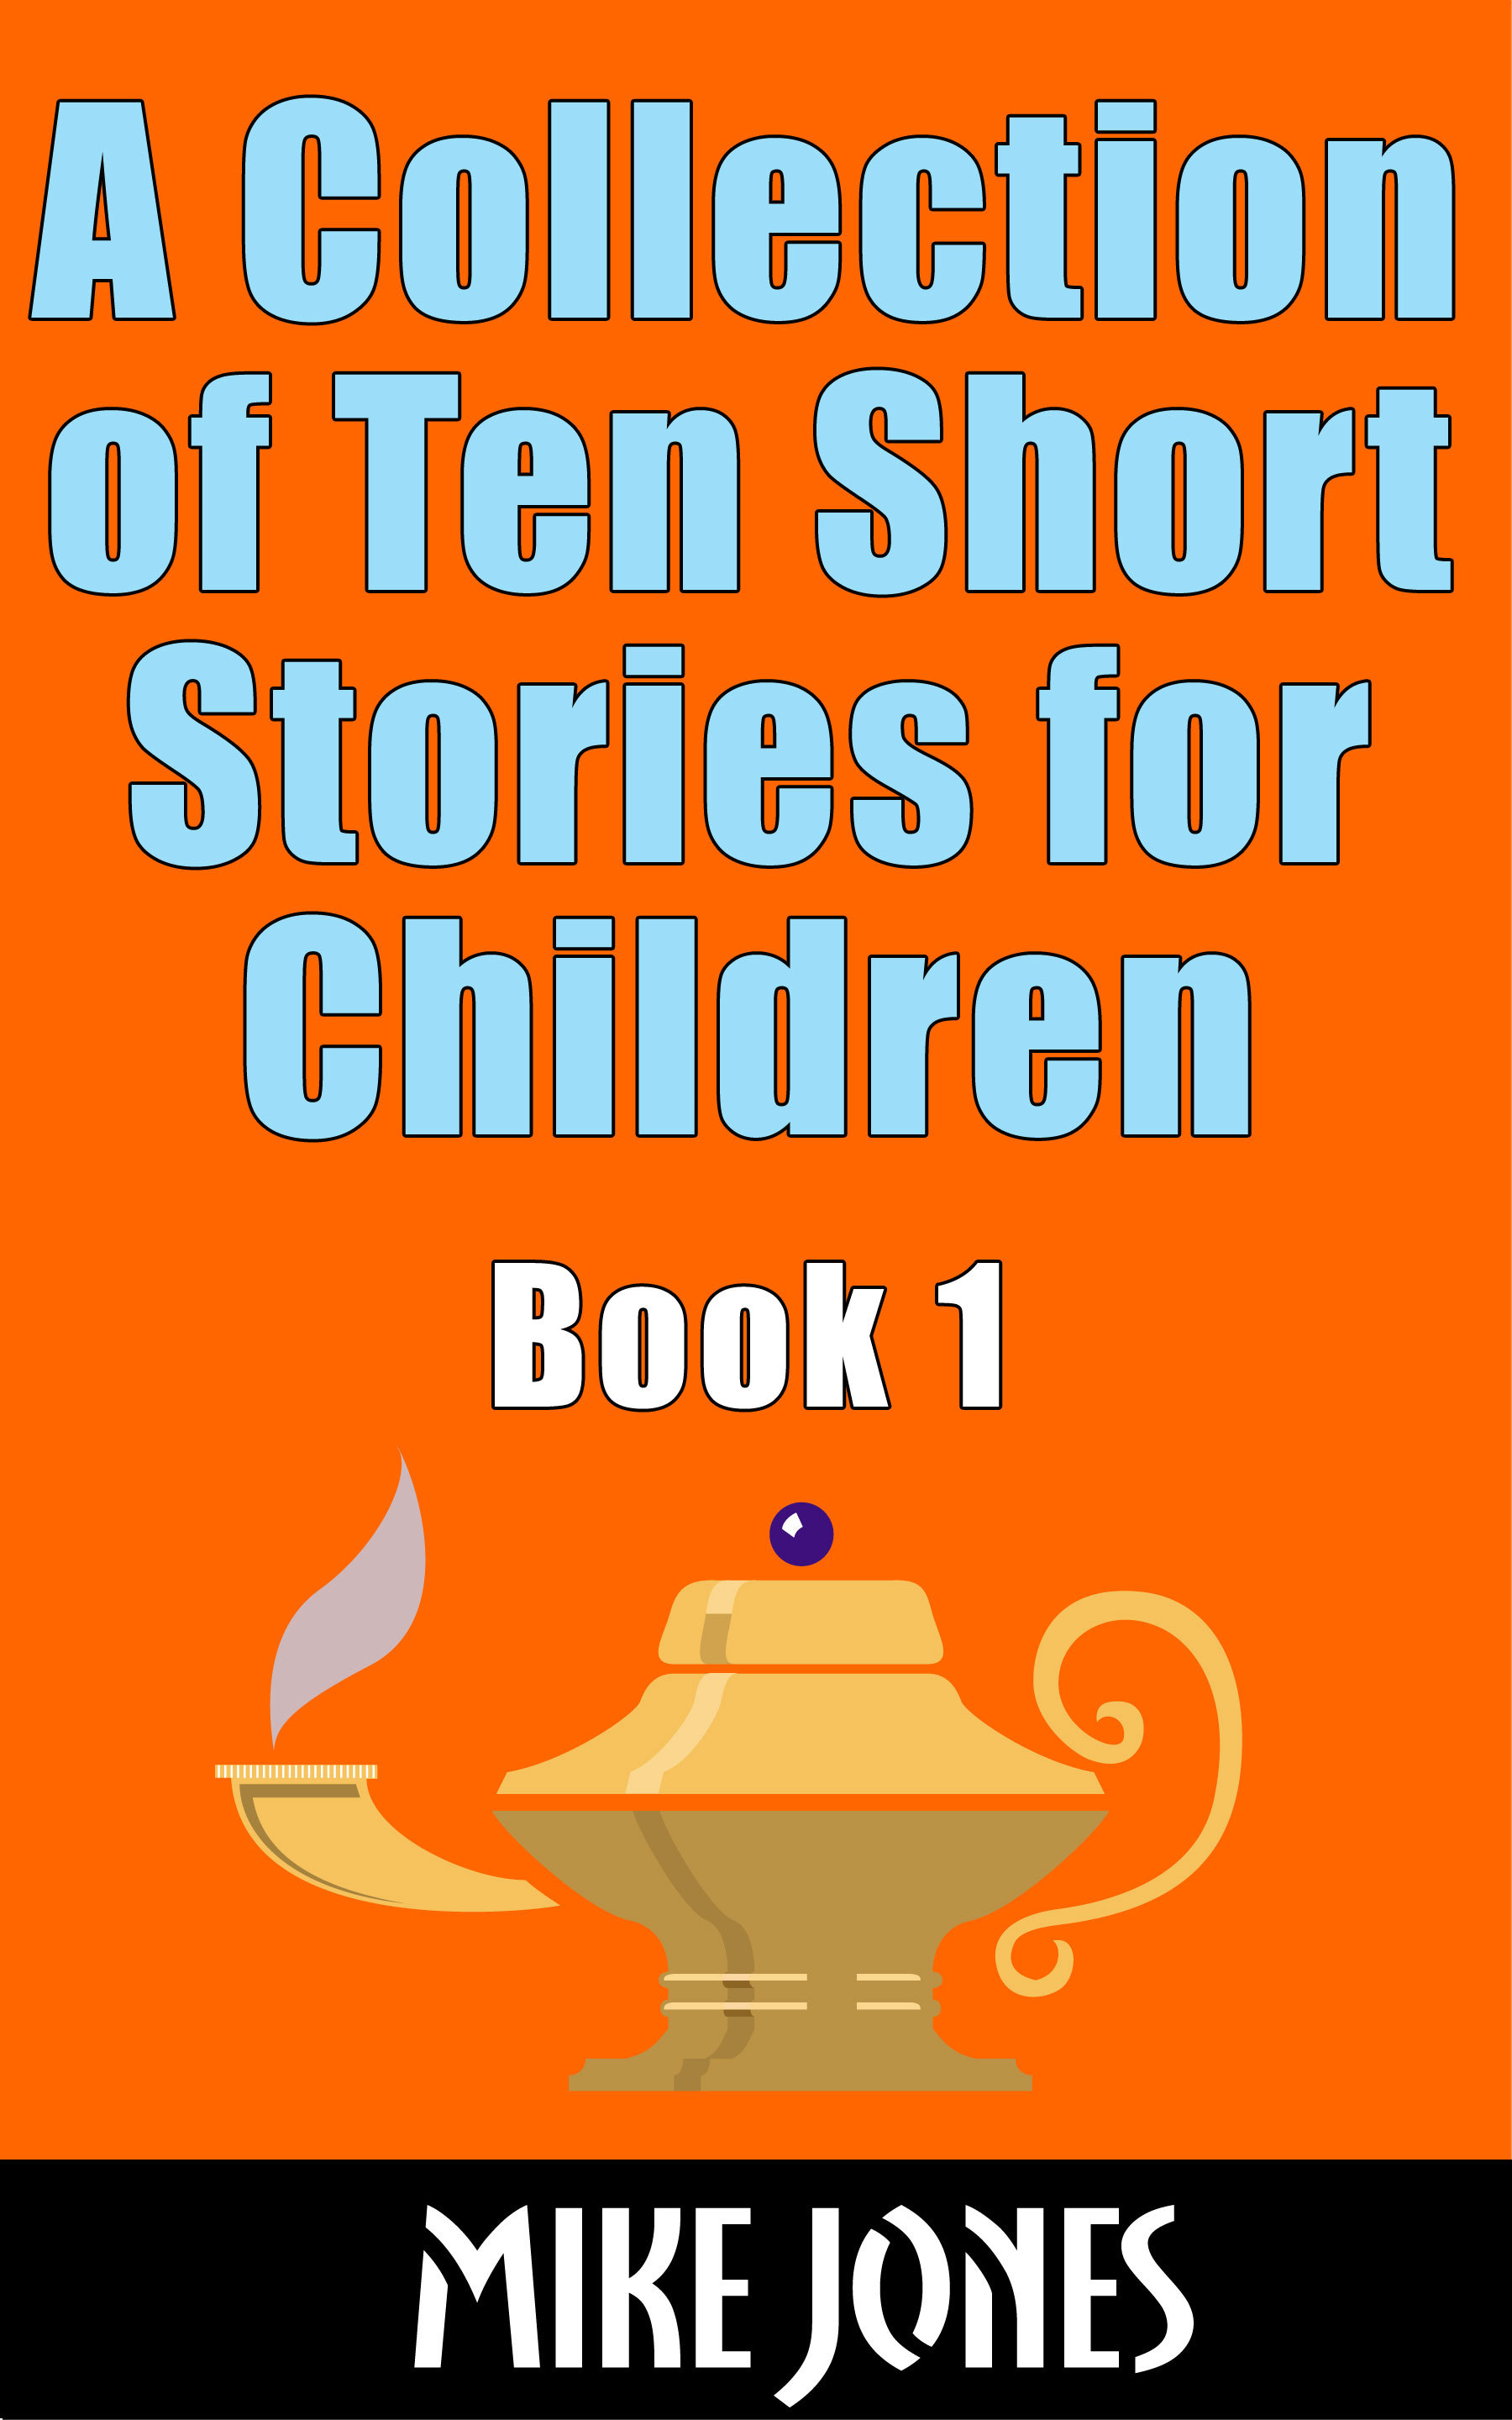 A Collection of Ten Short Stories for Children, Book 1 By: Mike Jones